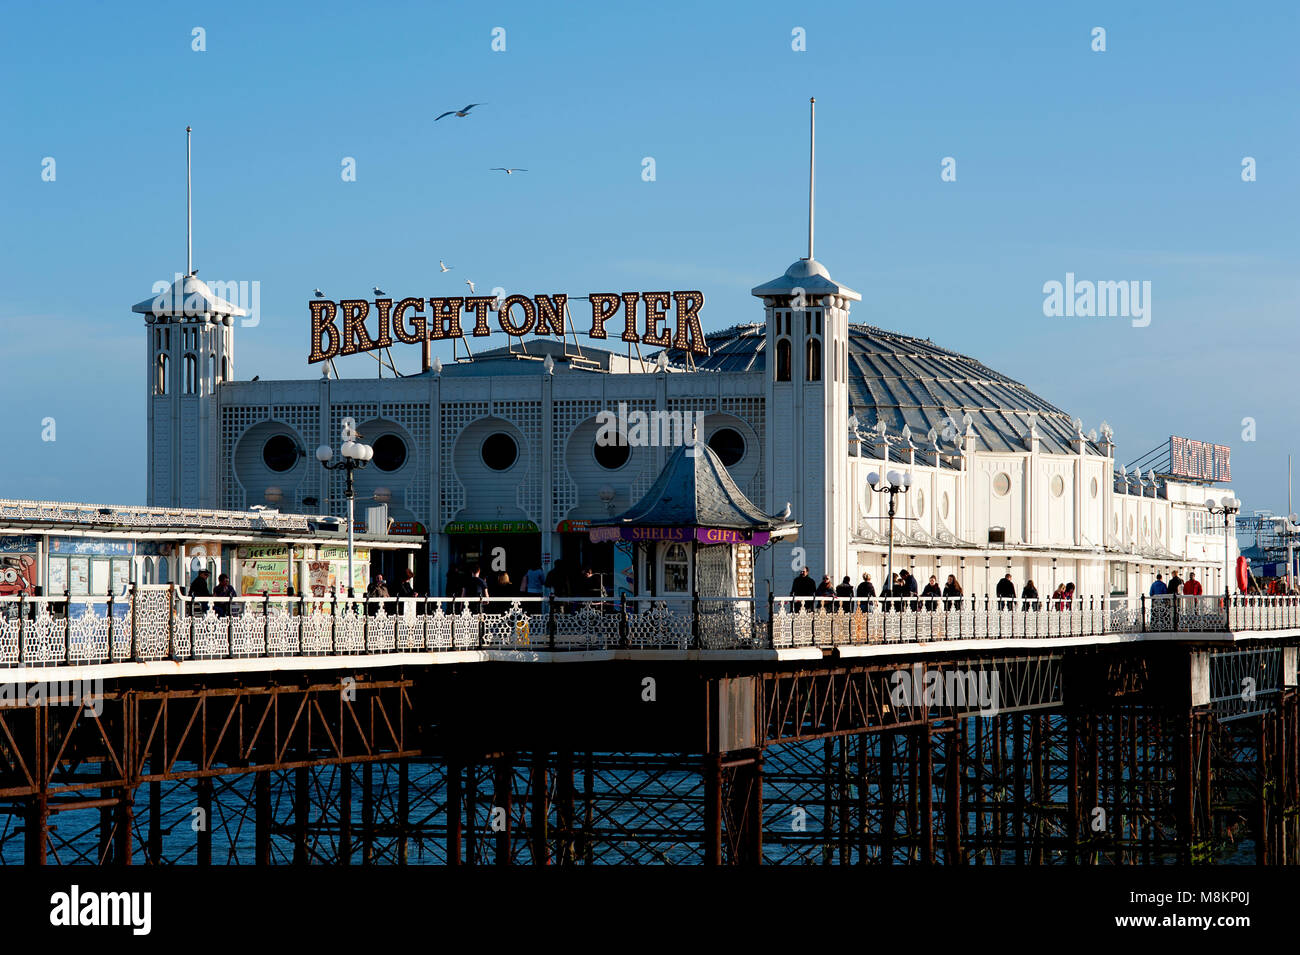 Brighton Pier, Brighton and Hove, UK, 2018.The Brighton Pier, also called the Palace Pier, is one of the most popular - Stock Image